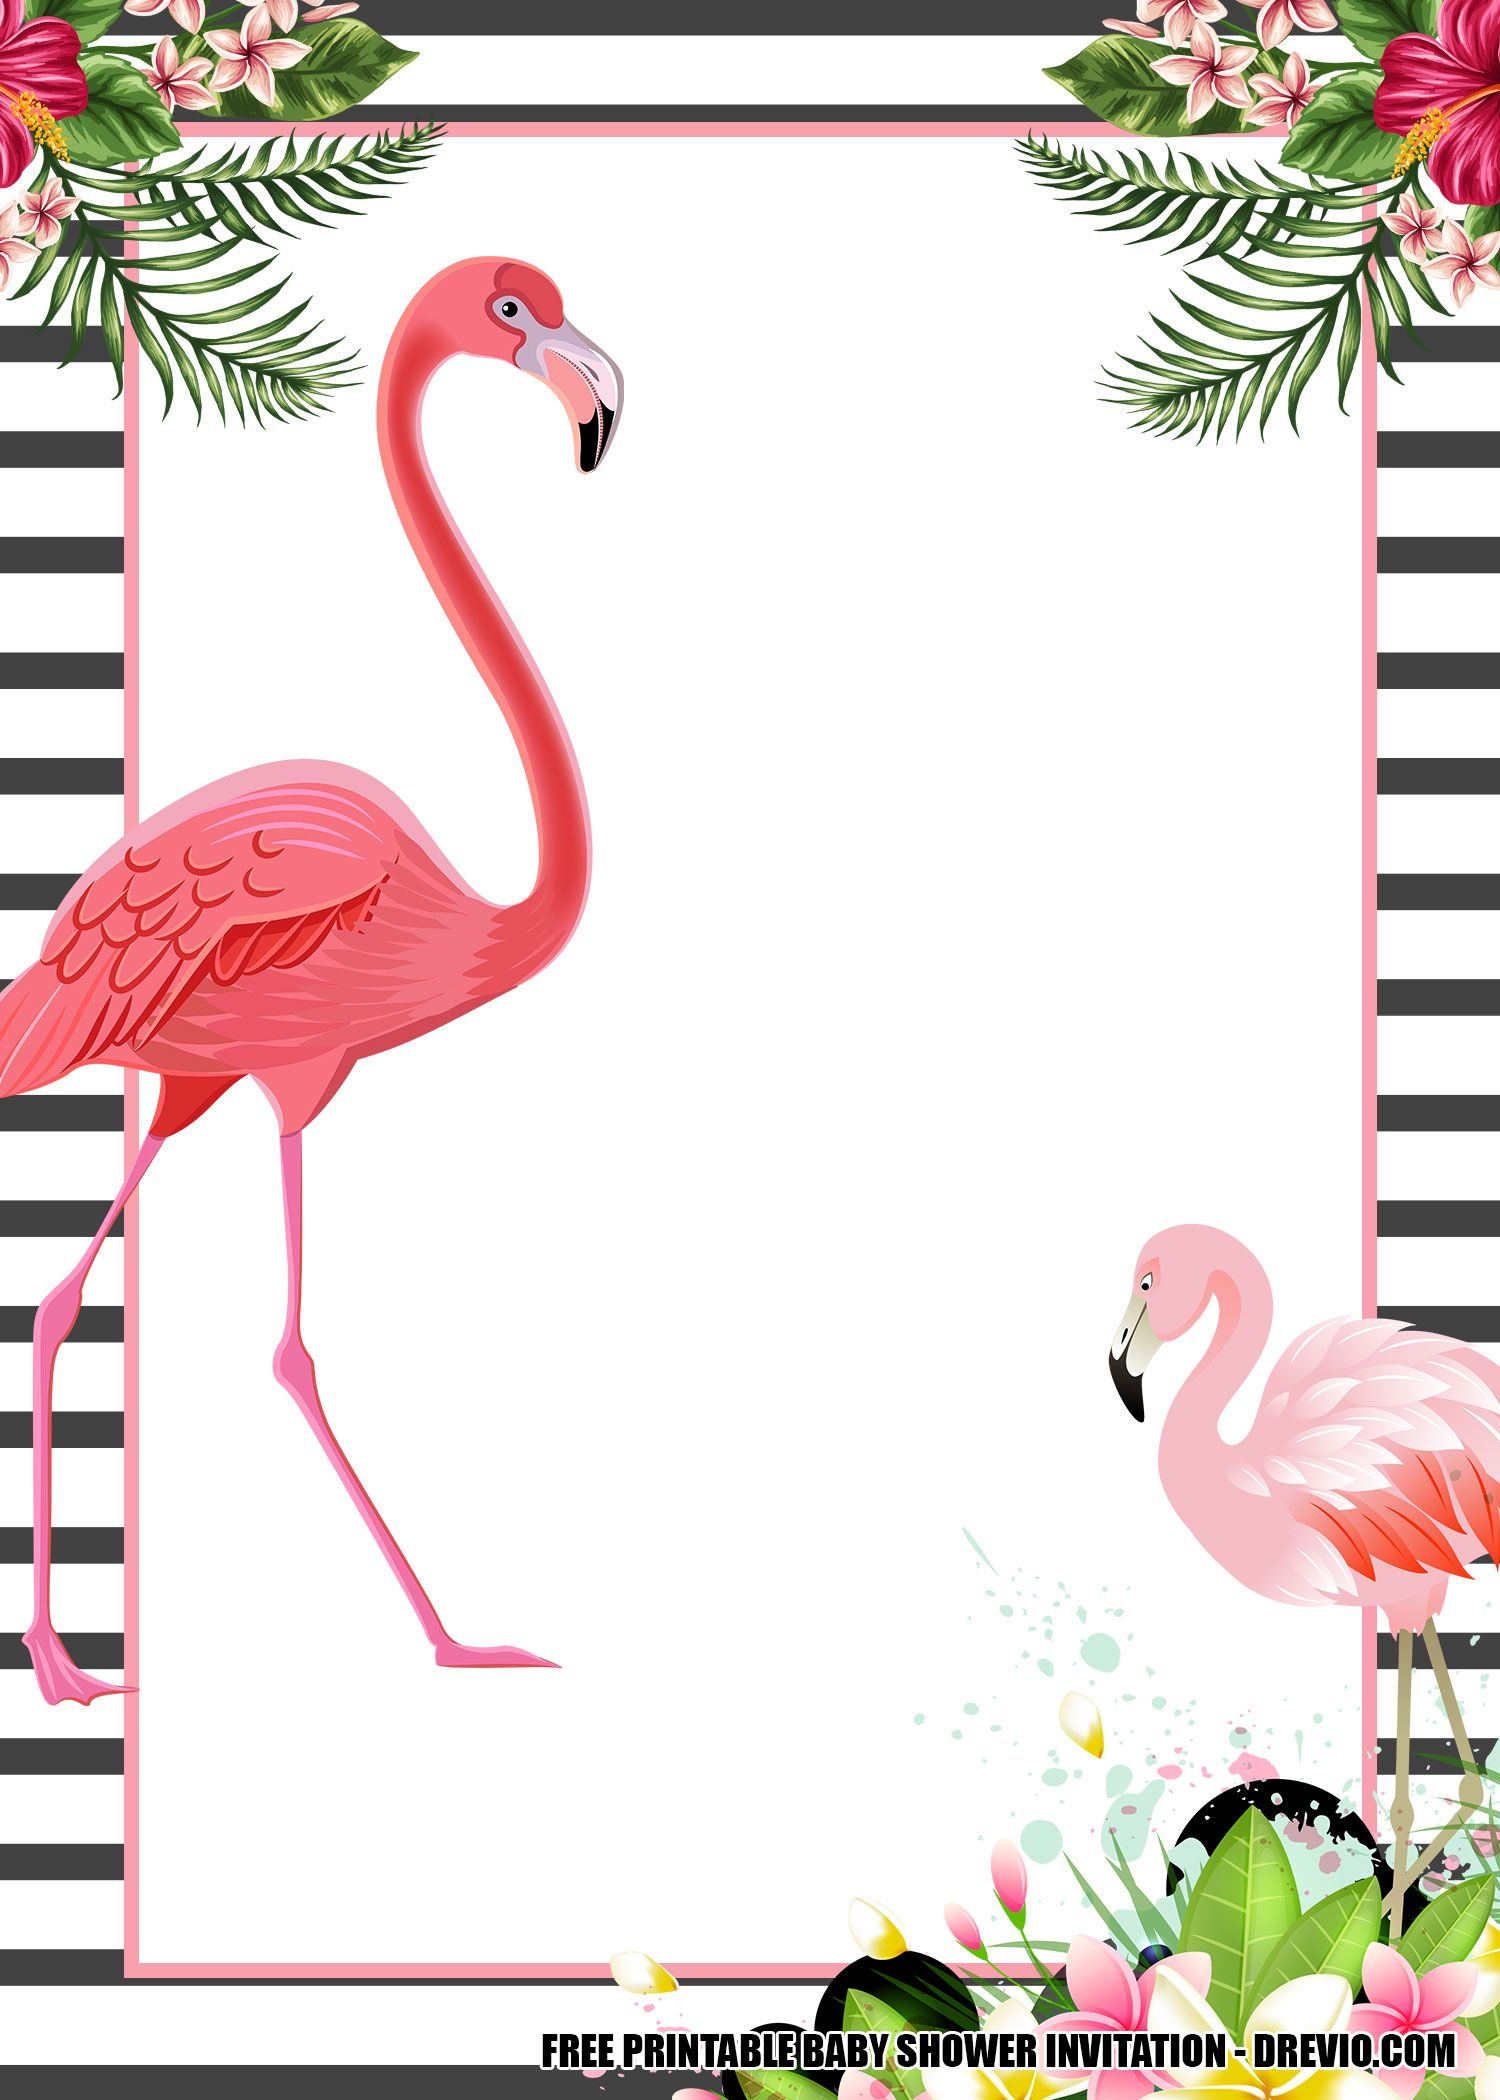 16 Free Flamingo Invitations Templates Downloadable For Any Occasions Flamingo Birthday Invitations Flamingo Invitation Free Printable Birthday Invitations